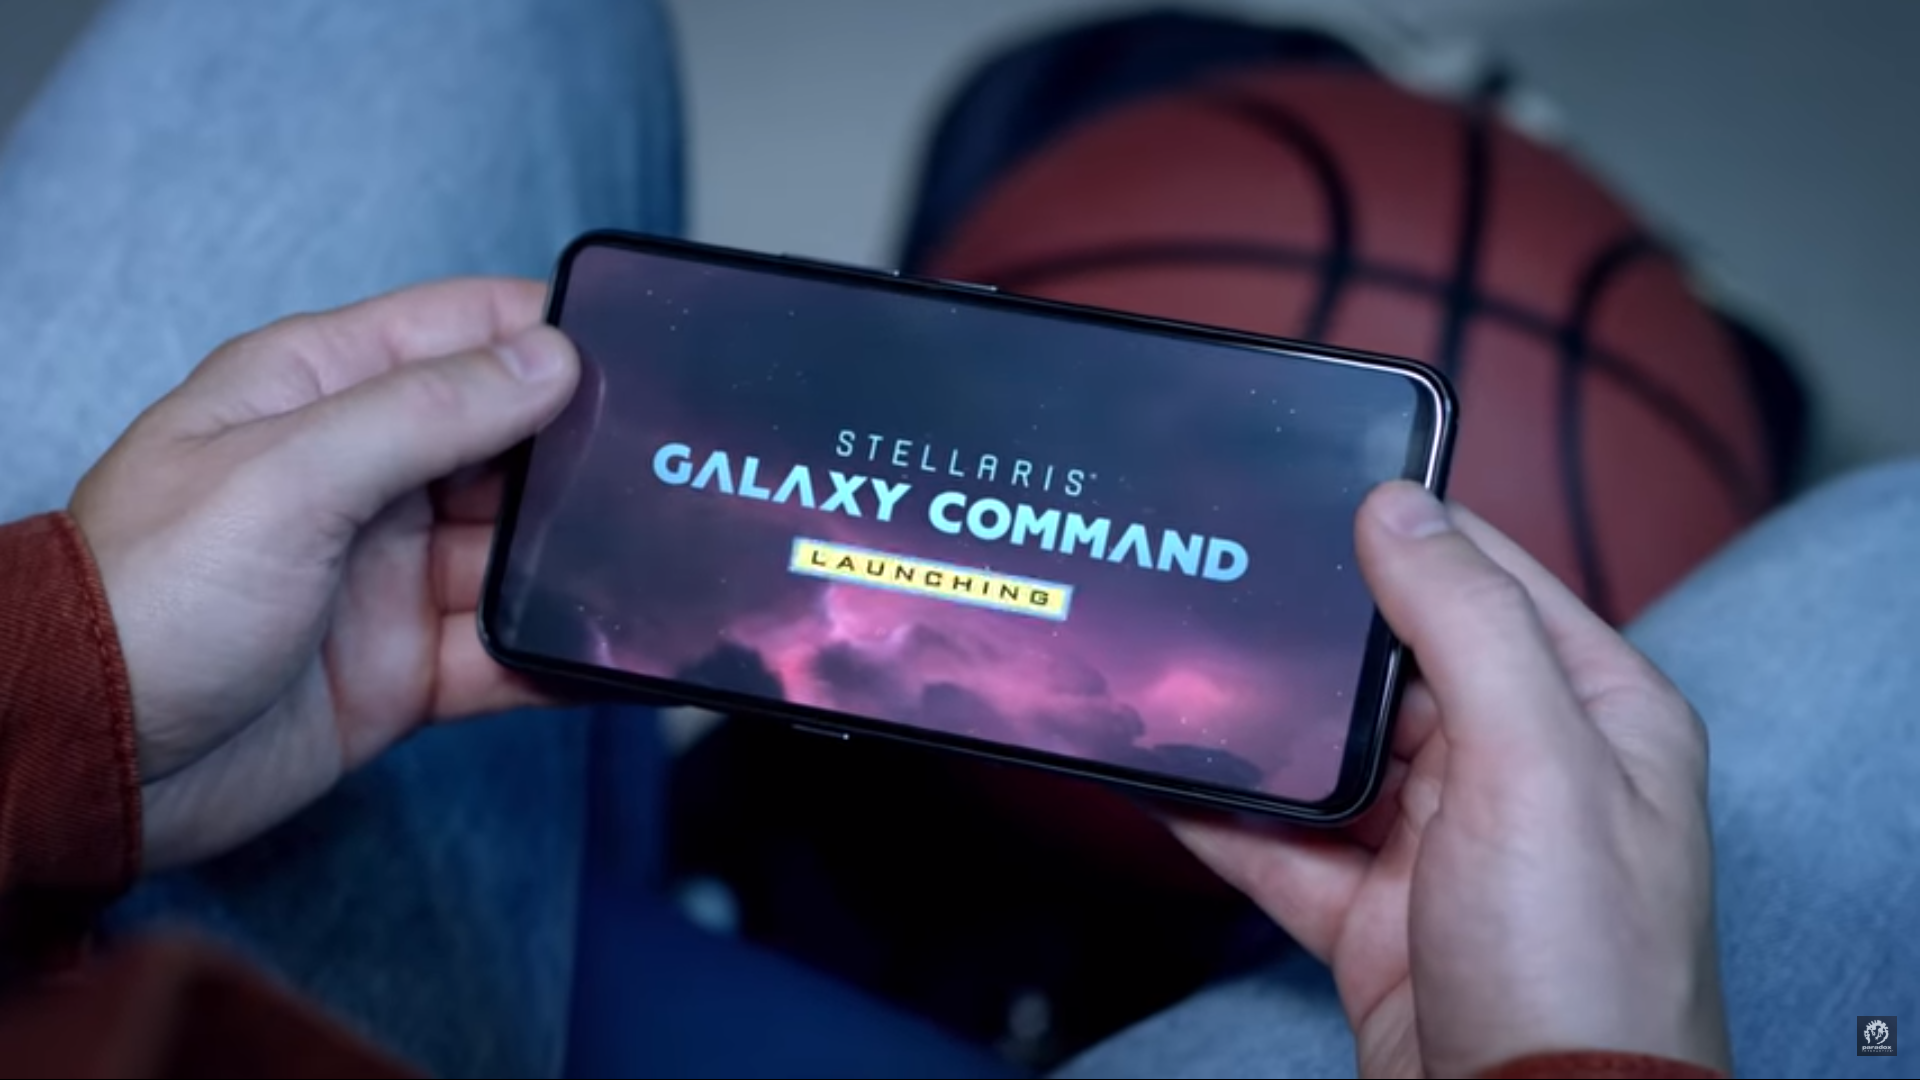 A phone with Stellaris: Galaxy Command on the screen